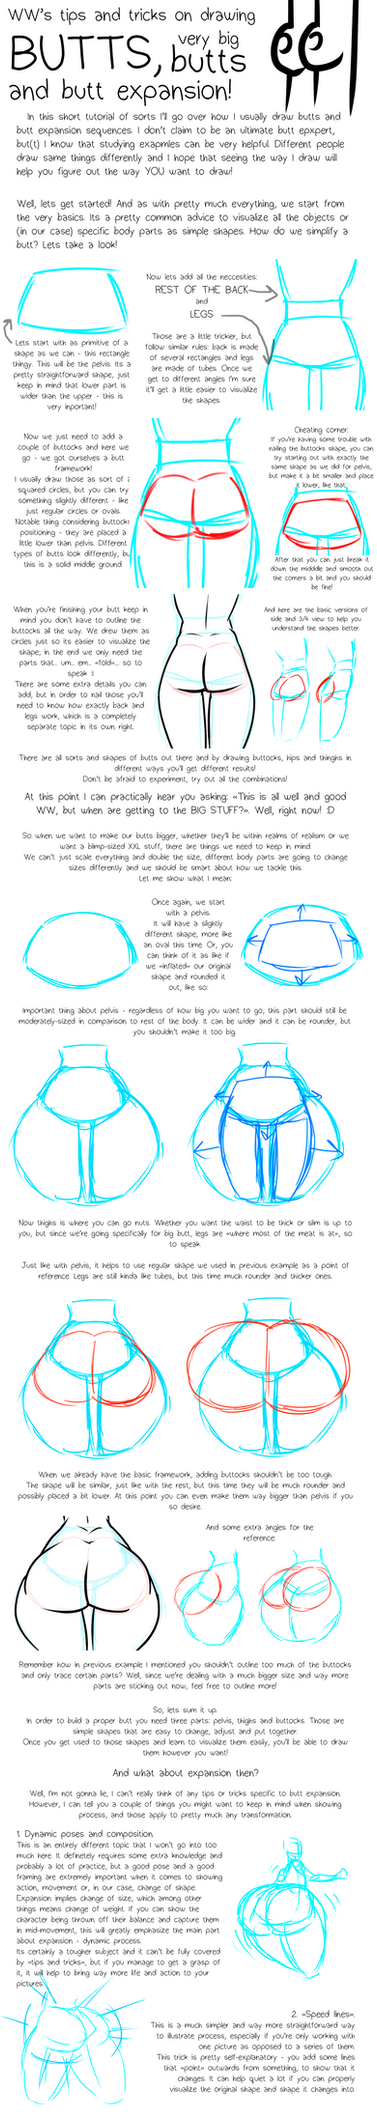 Tips and Tricks On Drawing Butts by WinterWarning